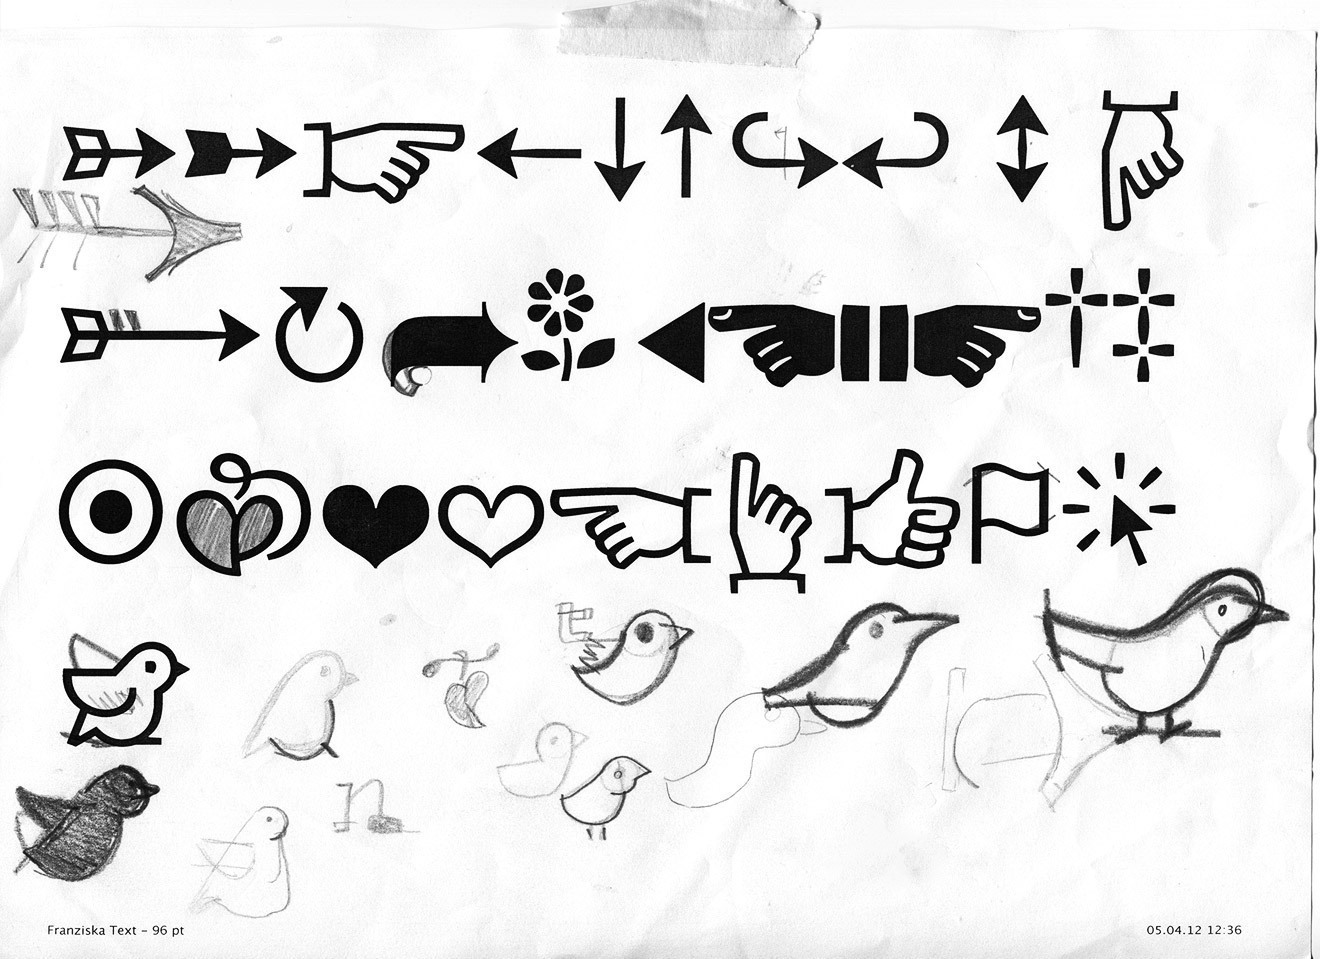 When you have drawn too many letters for too long, having fun with dingbats can be a welcome diversion. Translating icons like the printer's fist, the I-like-it thumb or the floral heart to contemporary forms that match serif characters can easily take up a day's work.